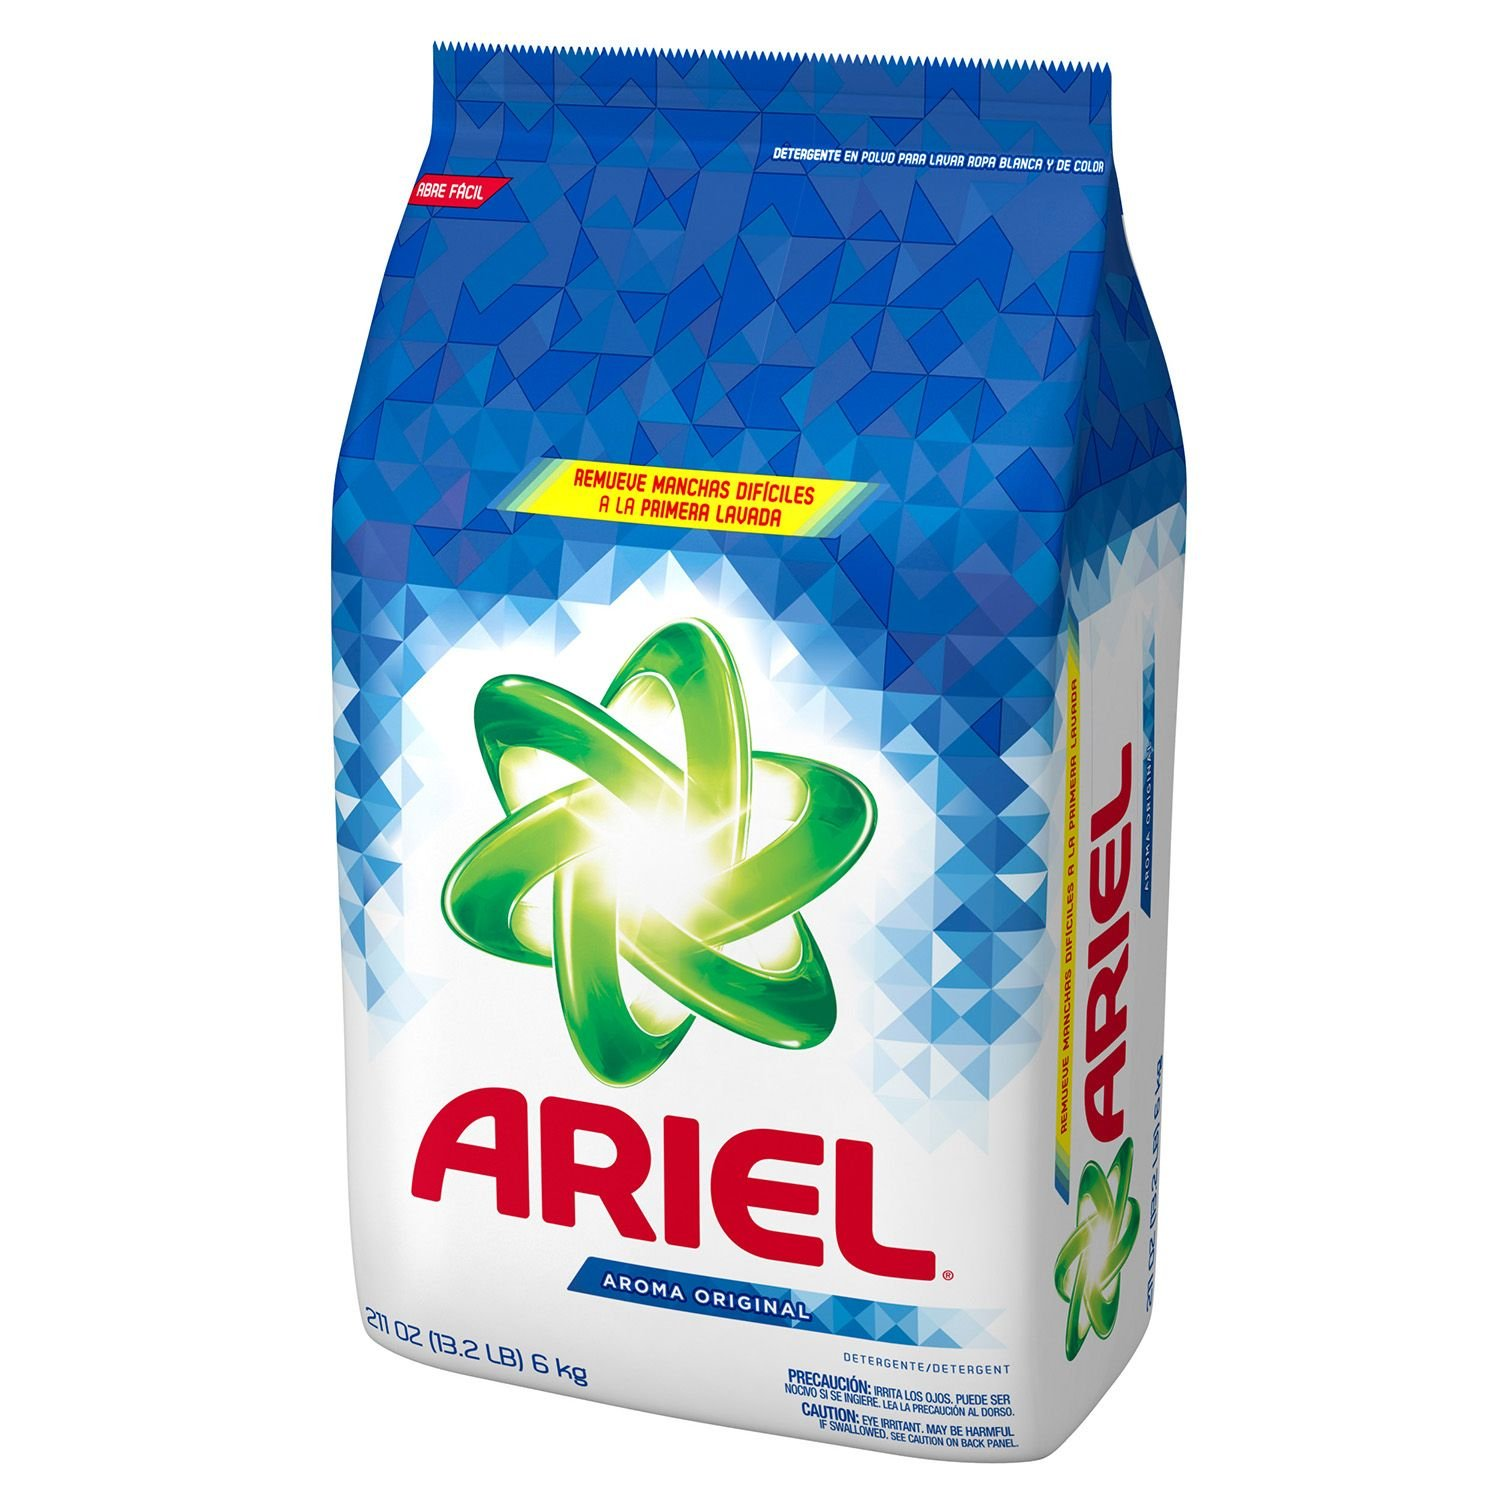 Amazon.com: Ariel detergente aroma Original (211oz.): Health ...